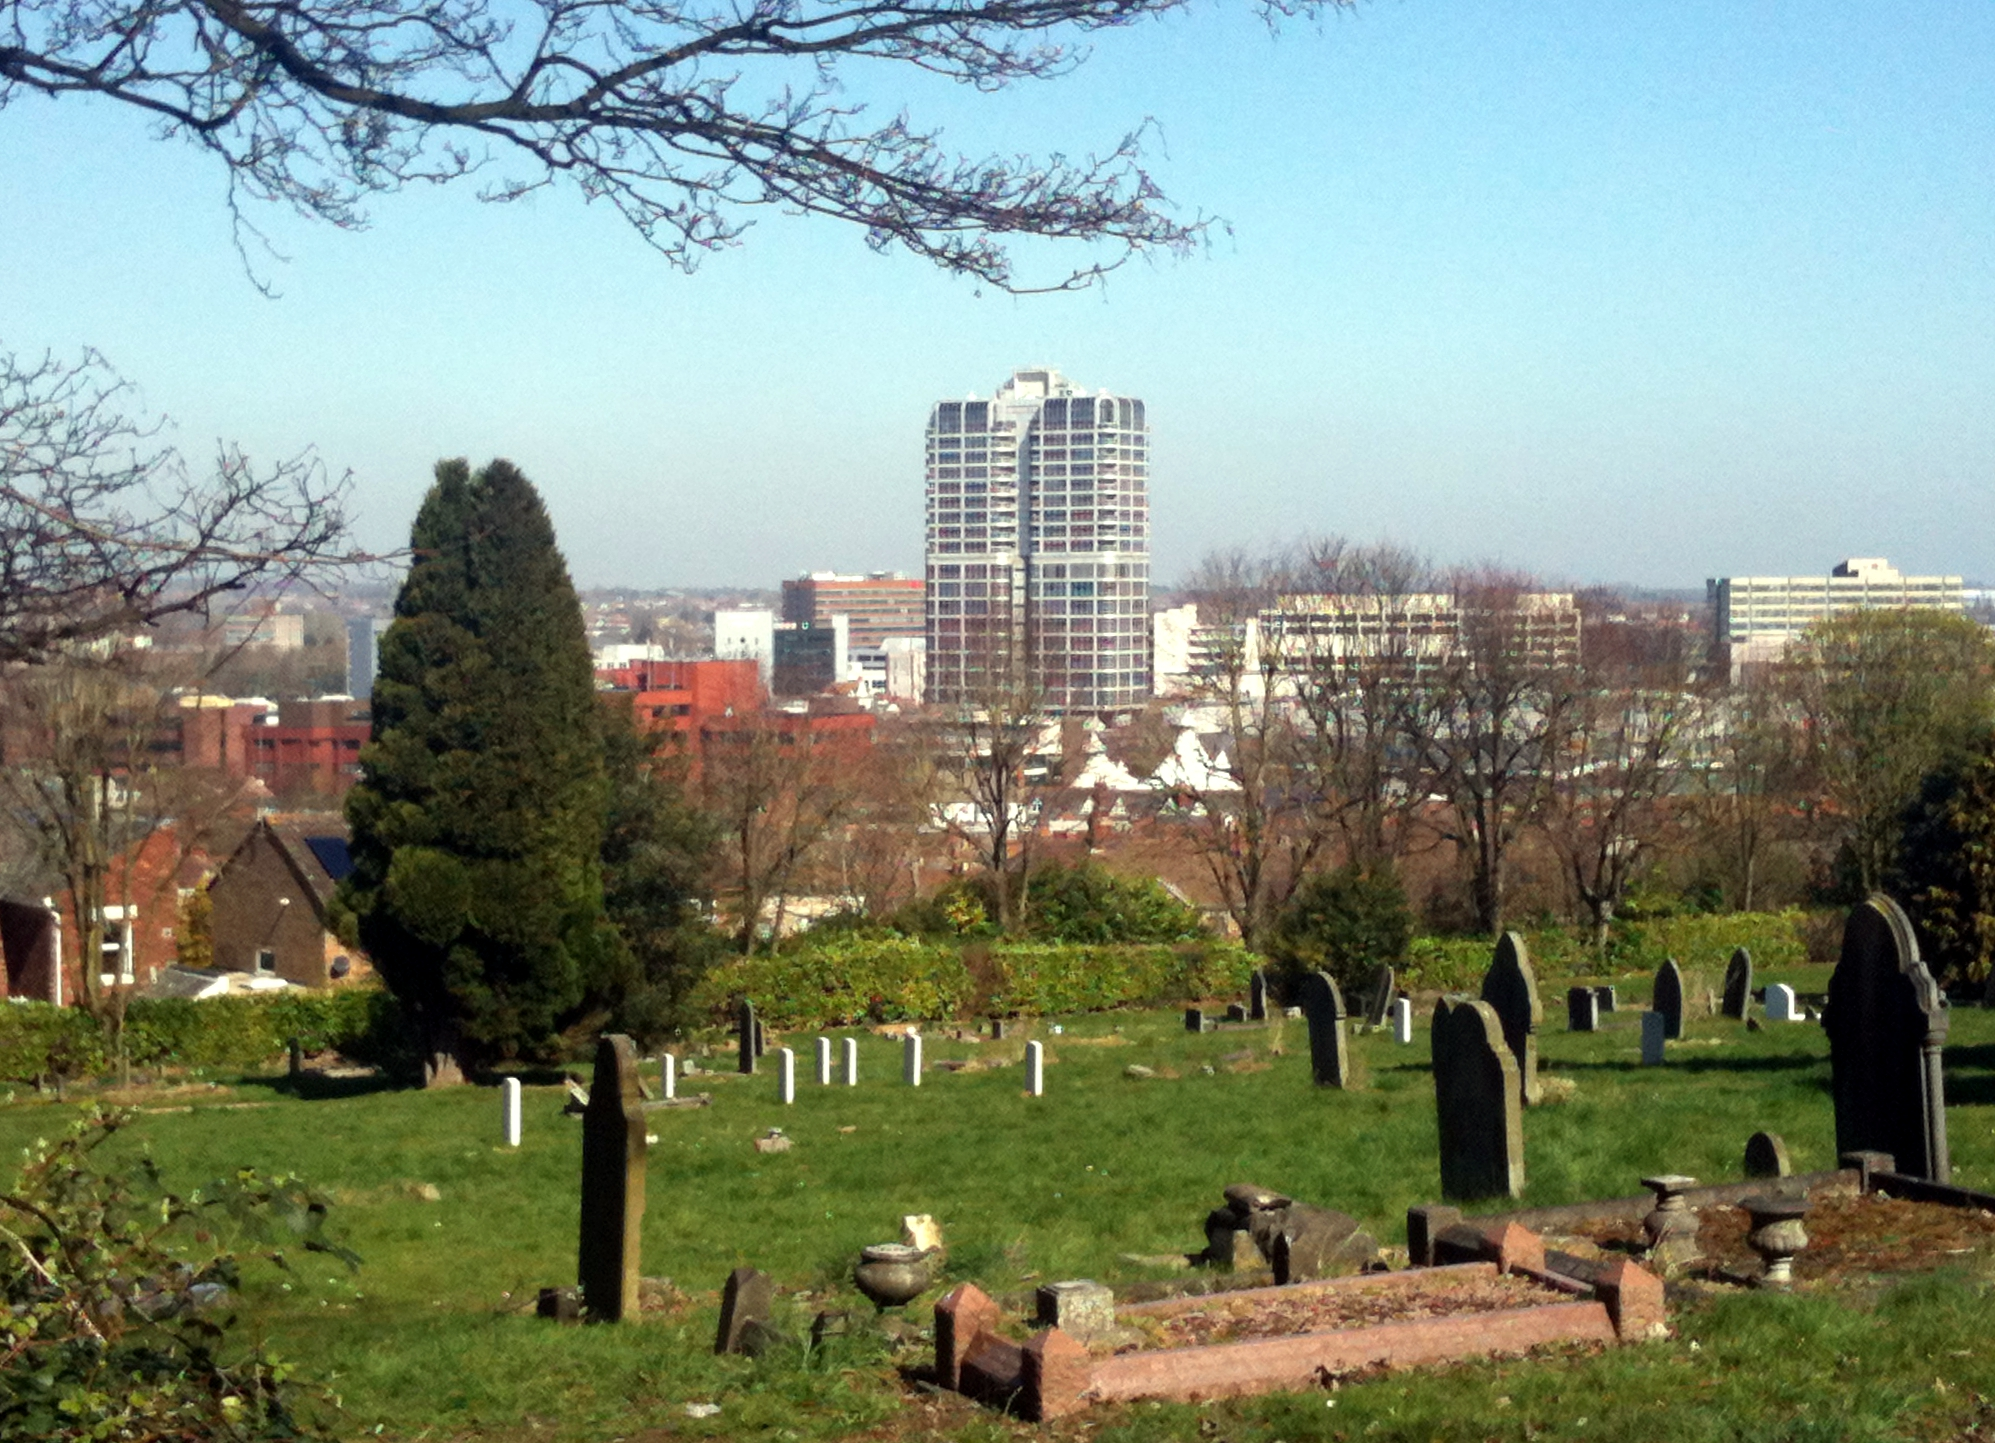 Swindon United Kingdom  city photos gallery : Swindon town centre, taken from Radnor Street Cemetery, Spring ...